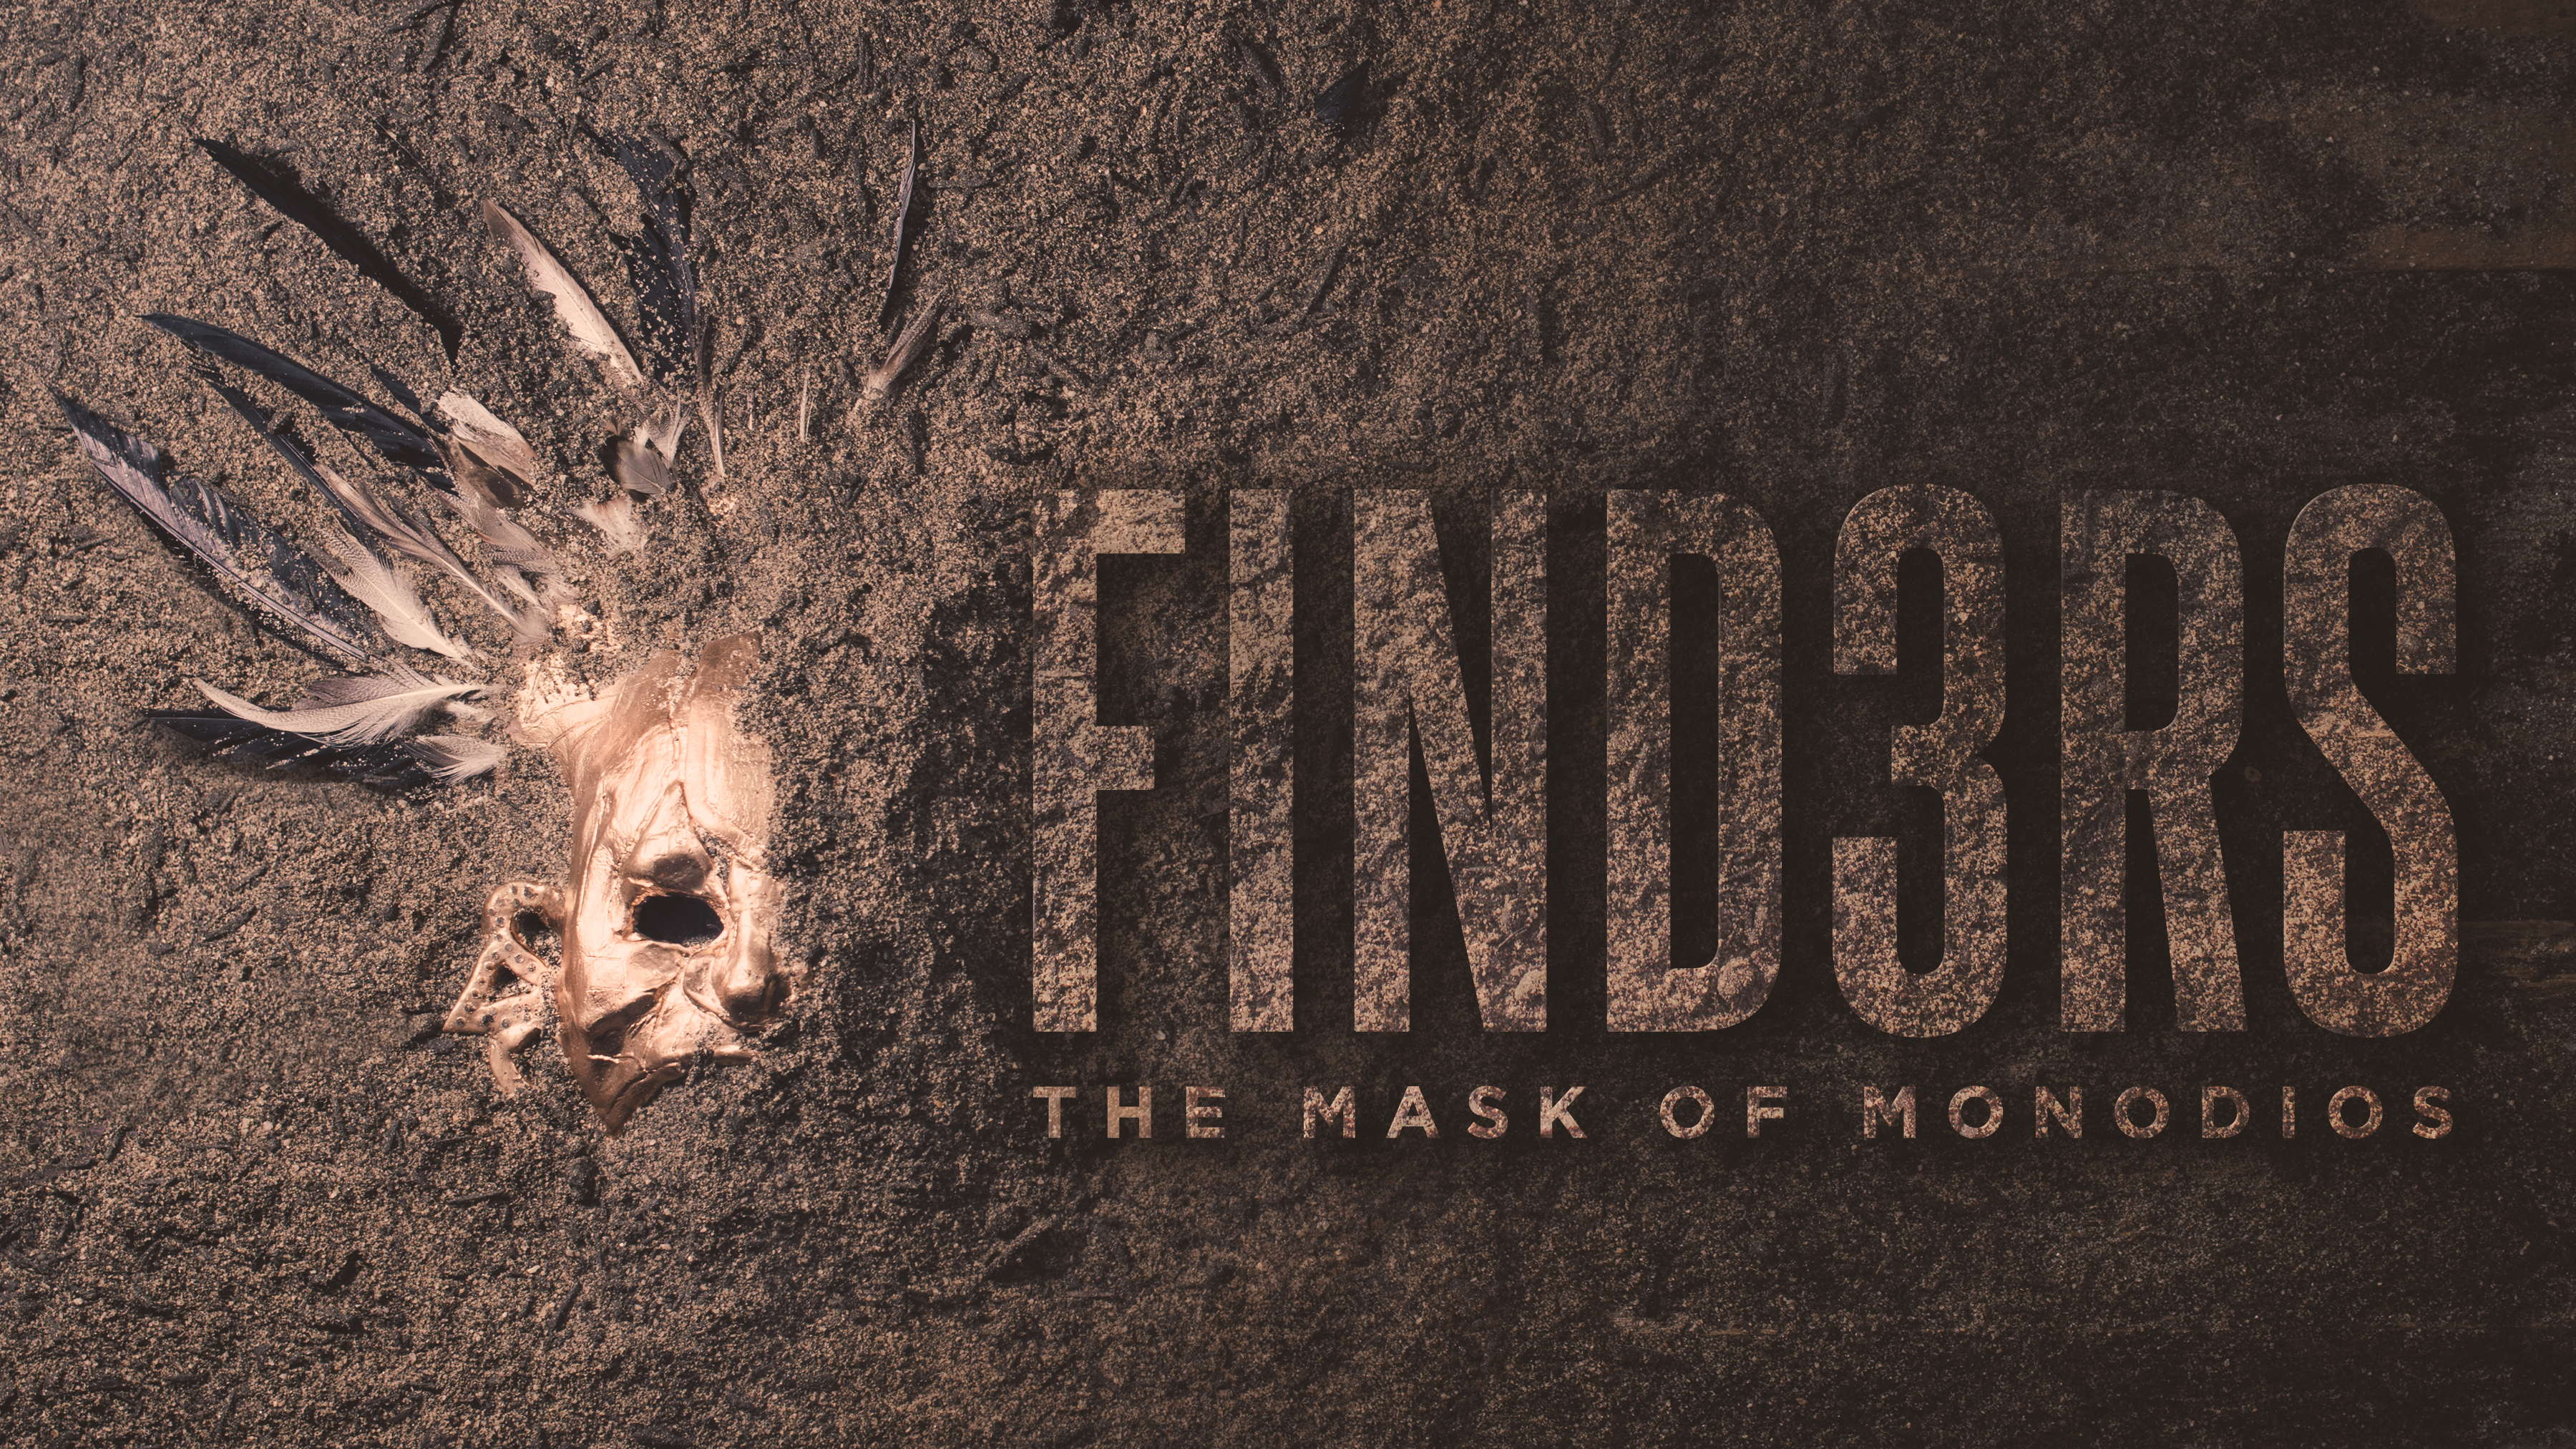 The finders 3 the mask of monodios